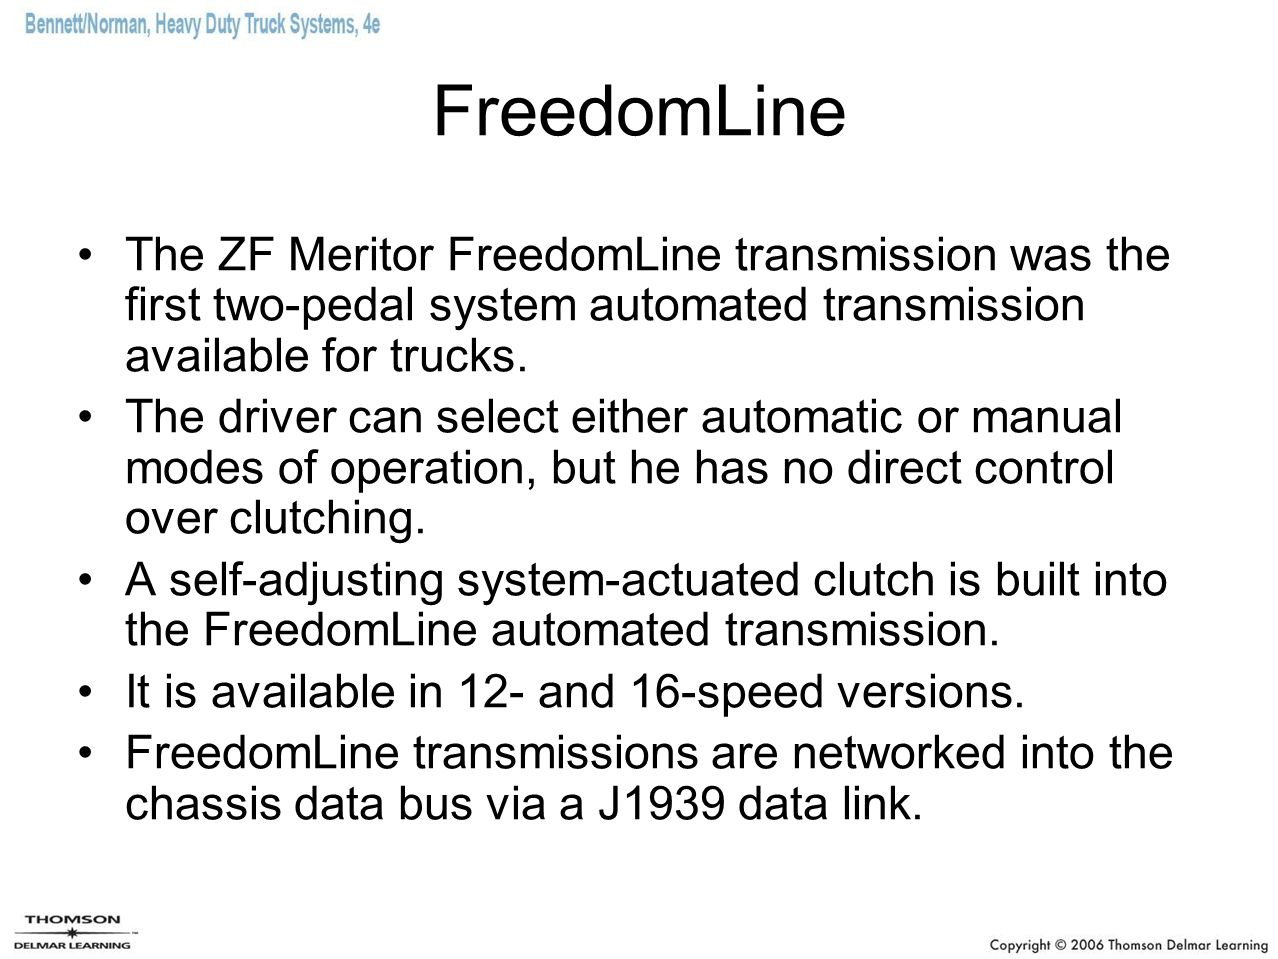 FreedomLine The ZF Meritor FreedomLine transmission was the first two-pedal system automated transmission available for trucks.